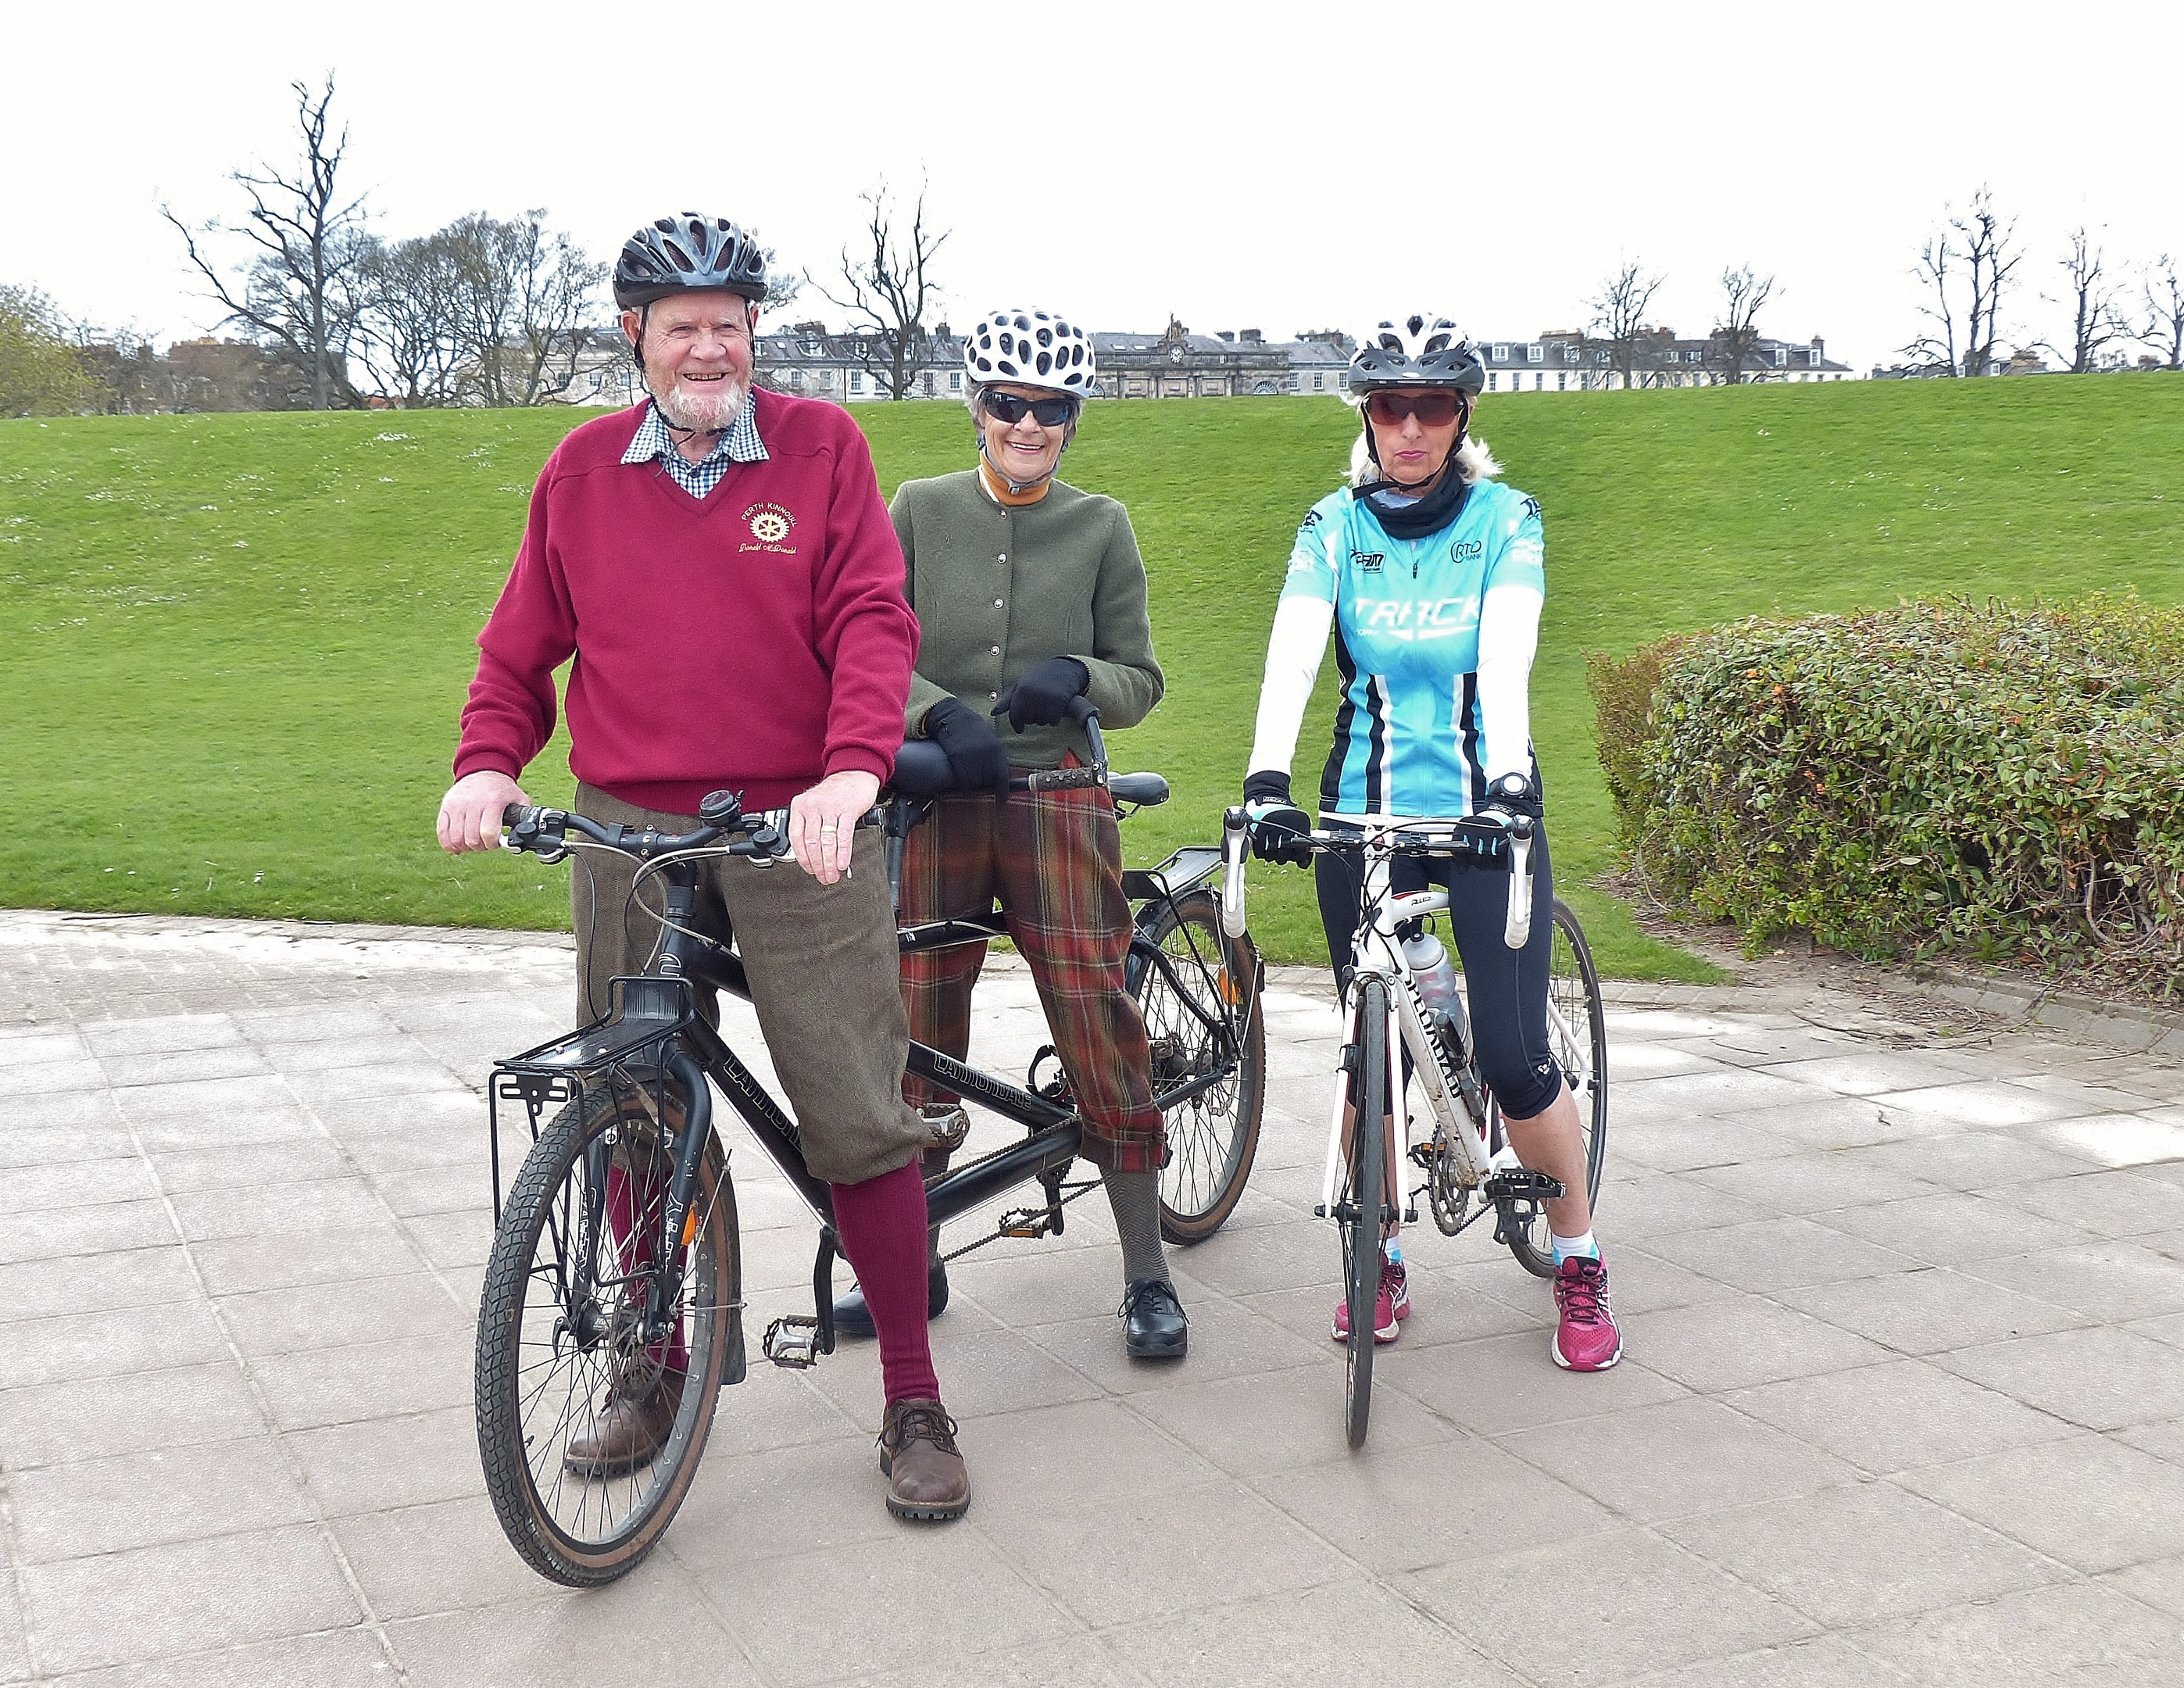 Promoting the Tayside Challenge is tandem riding Rotarian Donald McDonald accompanied by his wife Eva.  Alongside them is Lorna Anderson who will be taking part in Saturday's Tayside Challenge 46 mile route.